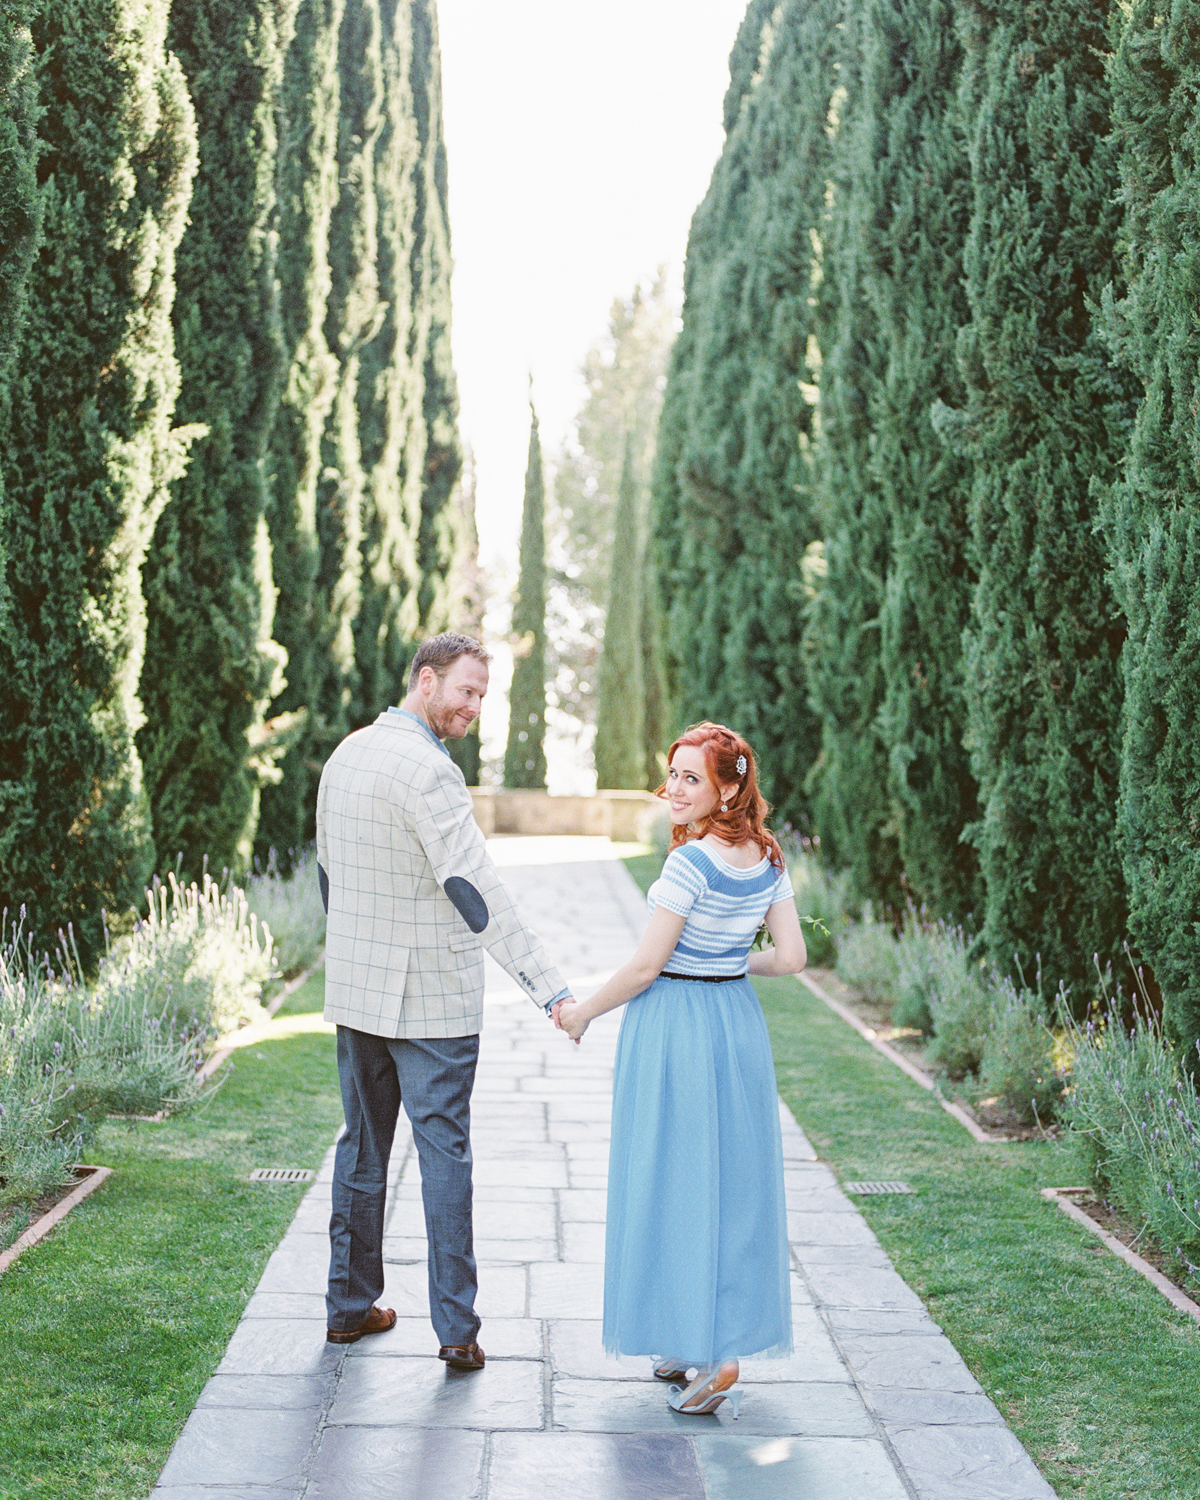 AKP_Greystone_Mansion_Engagement_Session_Film_Photographer-2.jpg